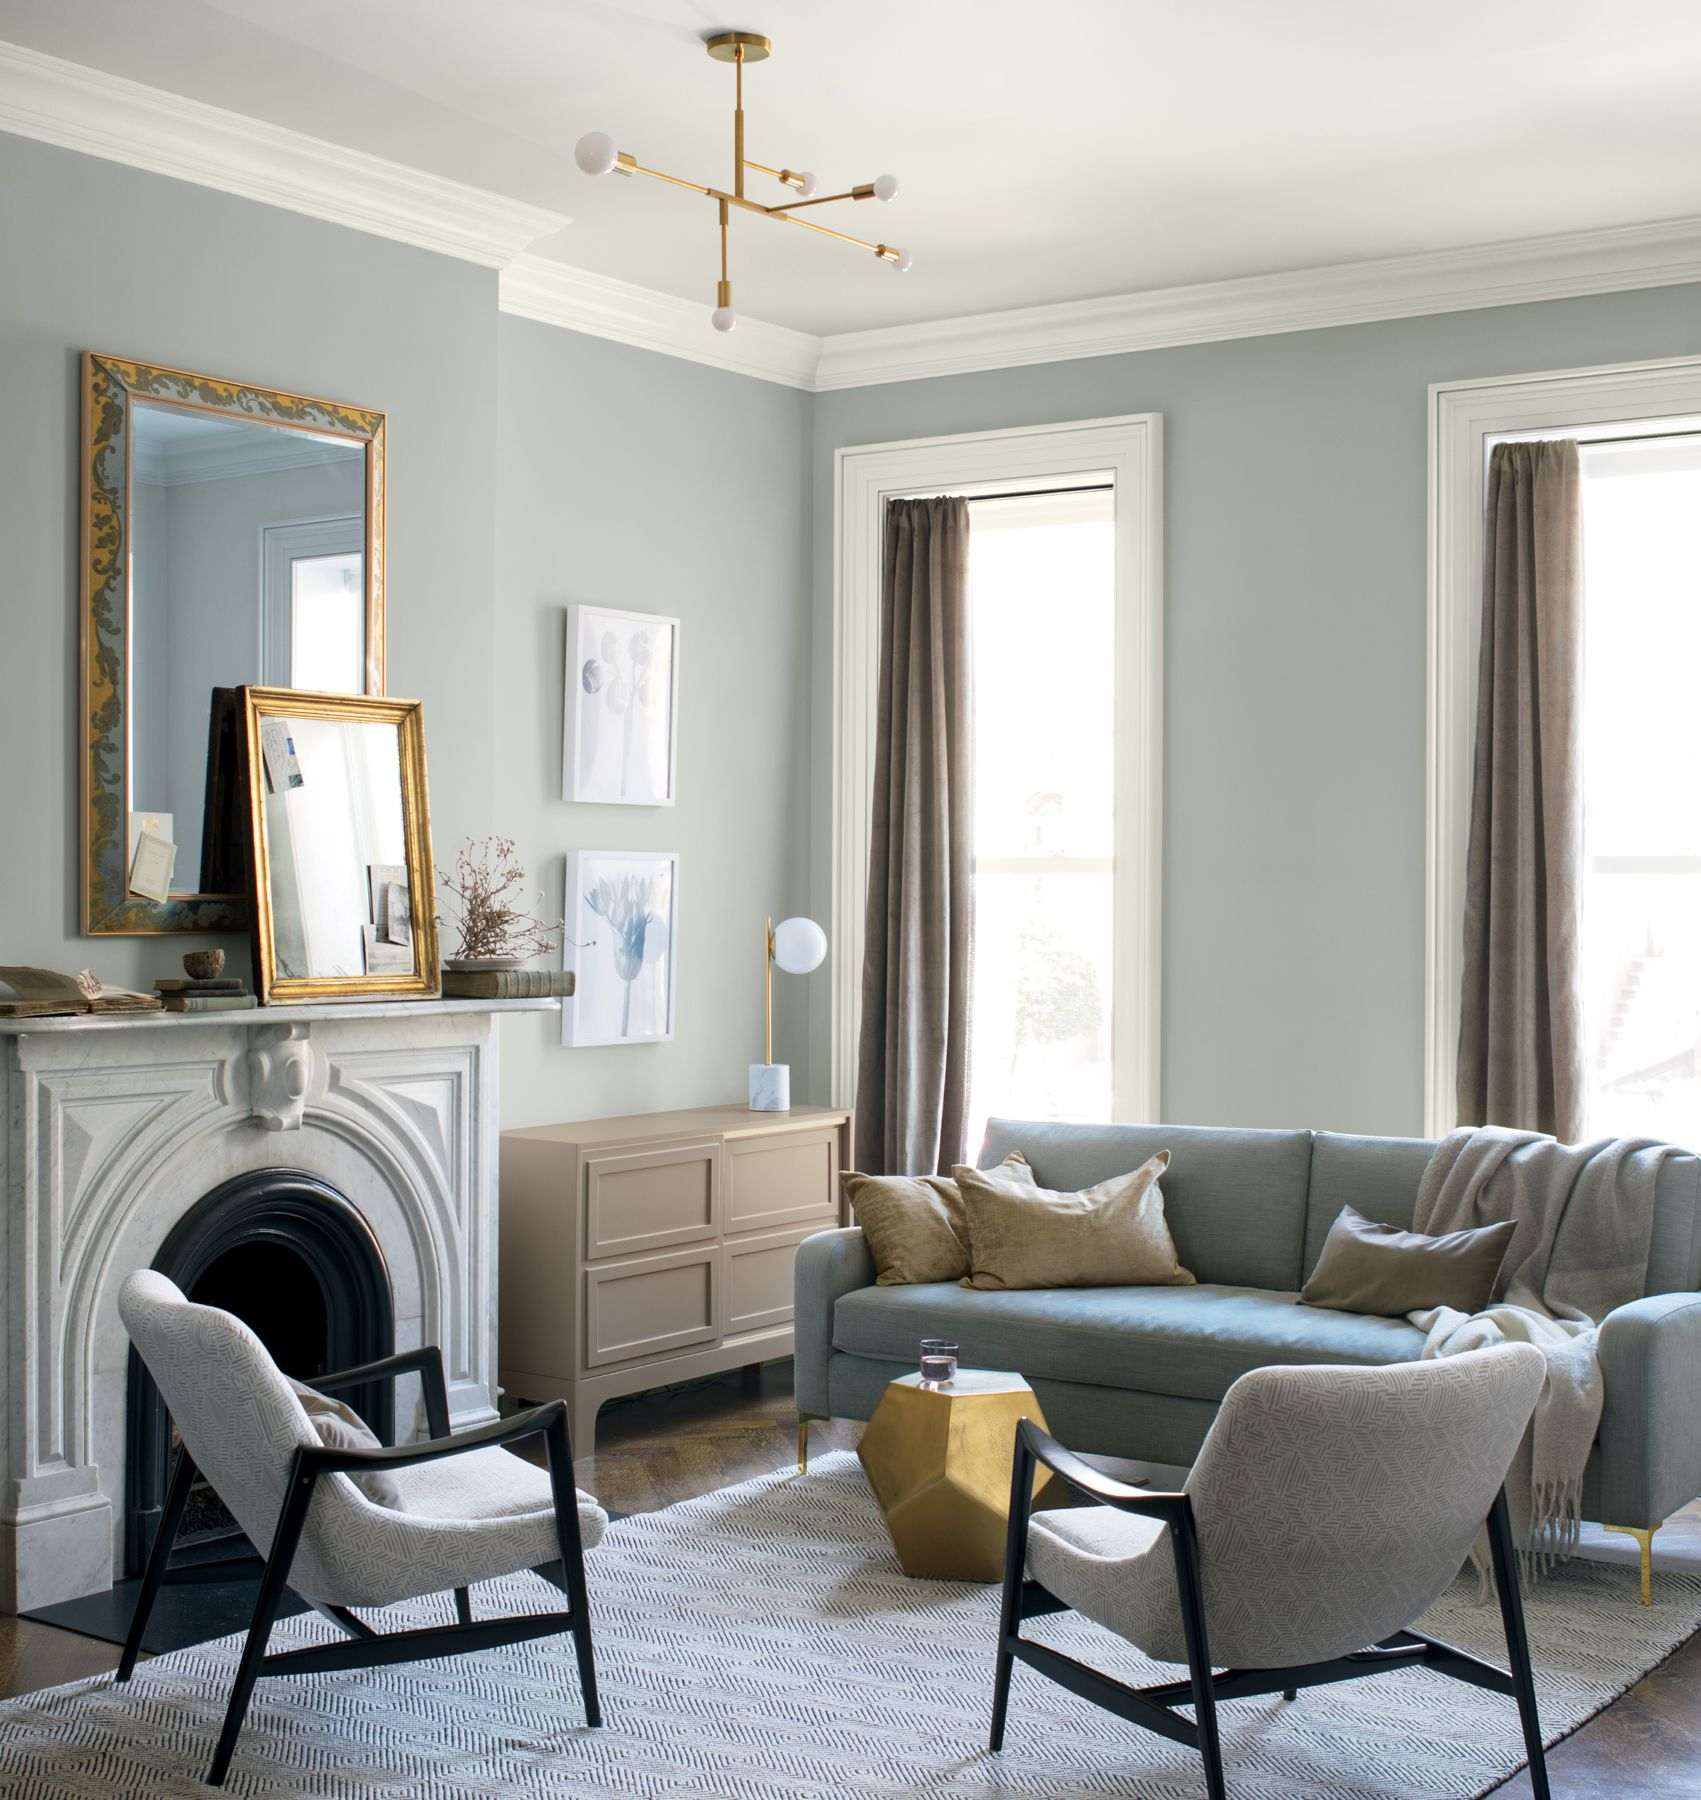 2019 Colour of the year - Metropolitan(AF-690)  A stylish blue-gray with cool blue undertones that reflects modern sophistication.